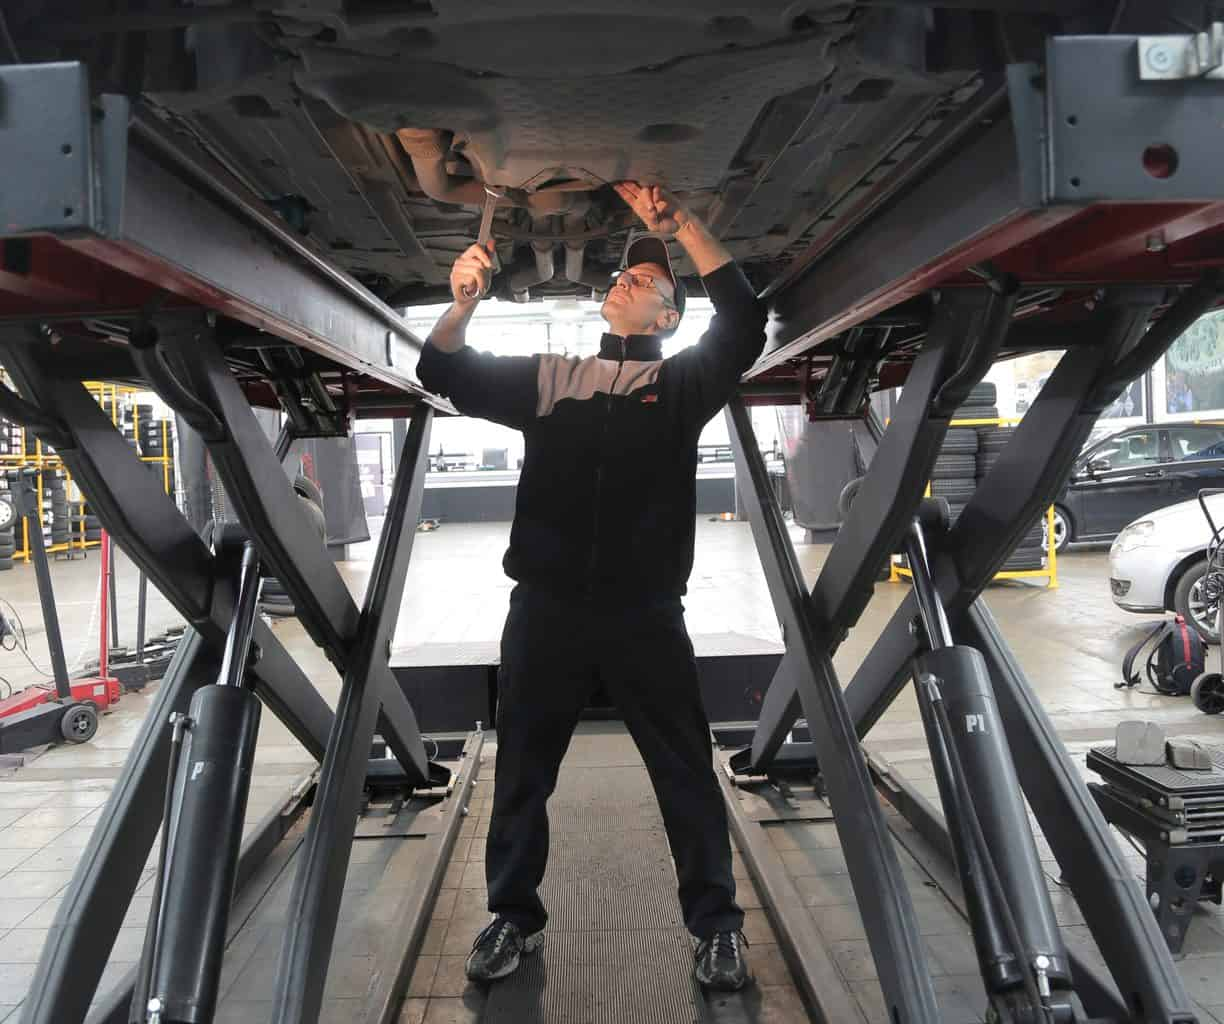 A mechanic standing under the vehicle fixing an engine